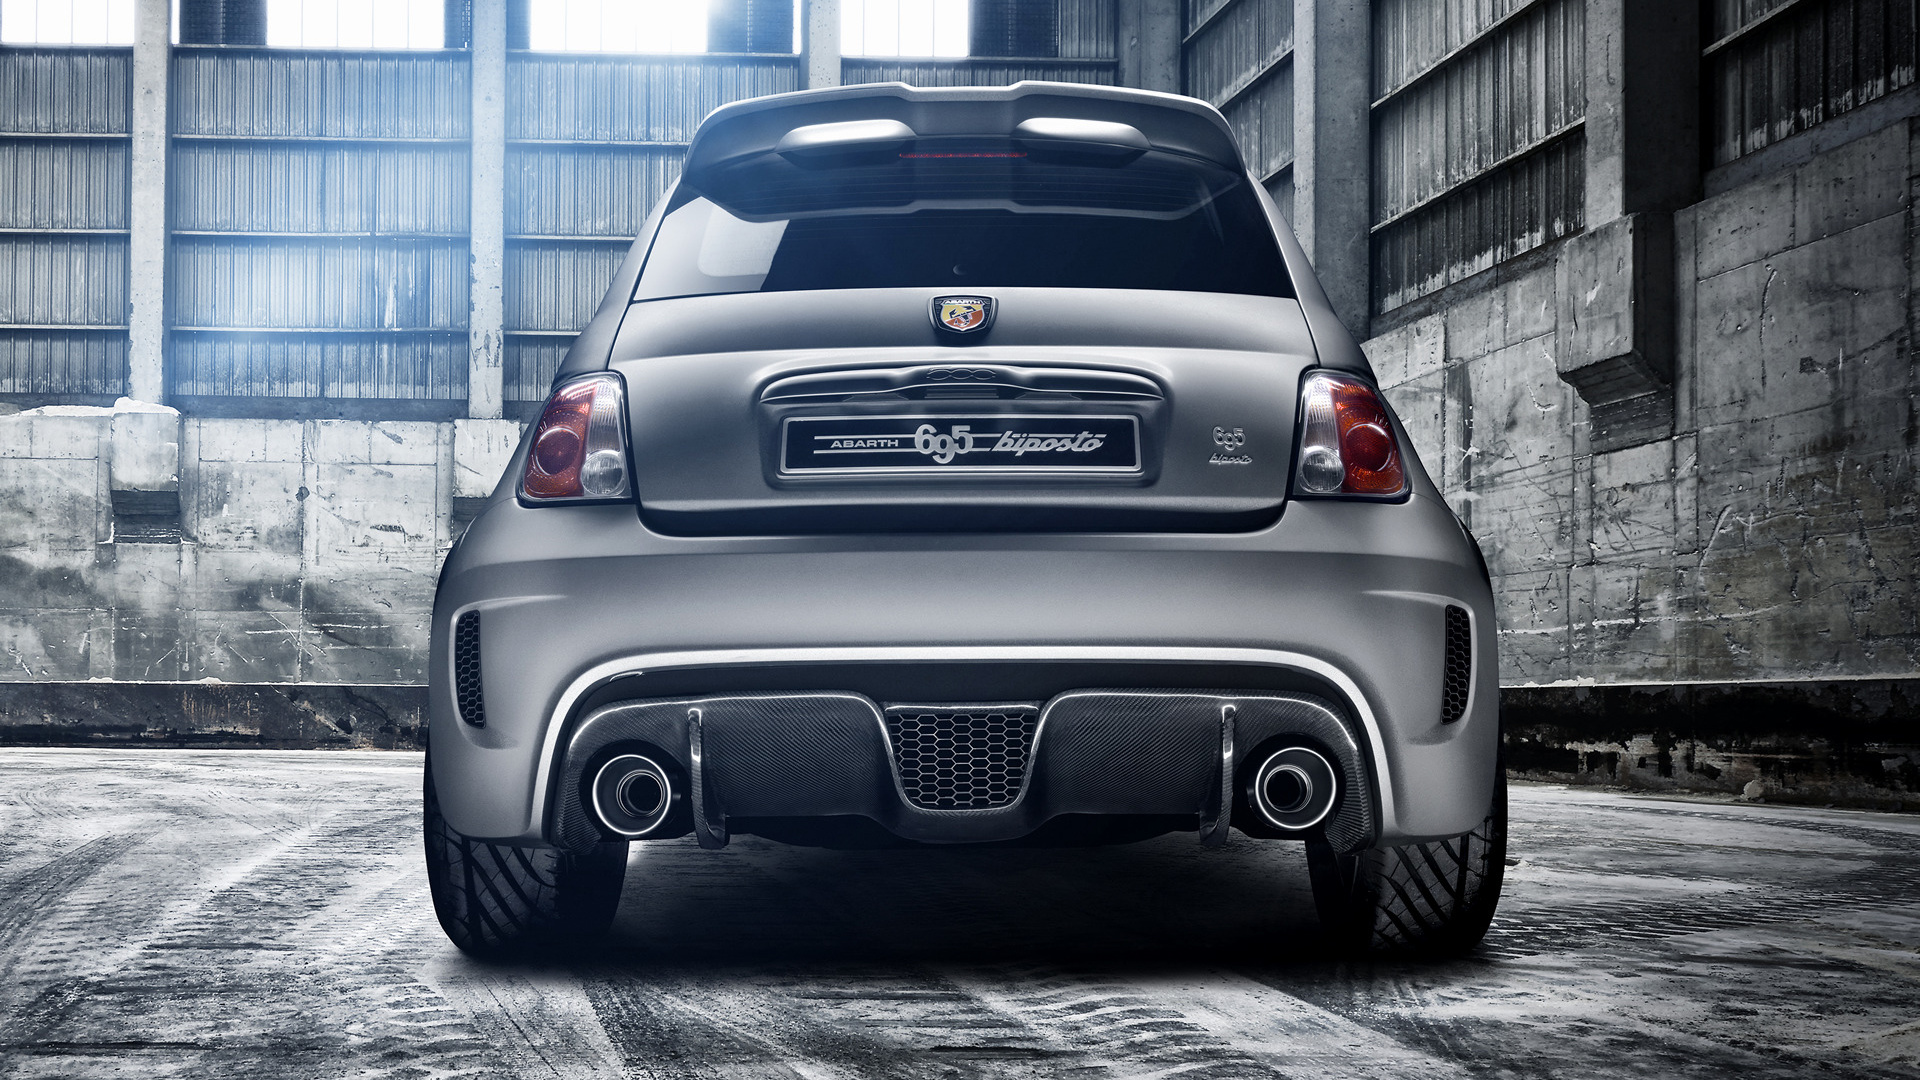 Fiat Abarth 695 Biposto Wallpaper HD 47725 1920x1080 px ~ HDWallSource.com